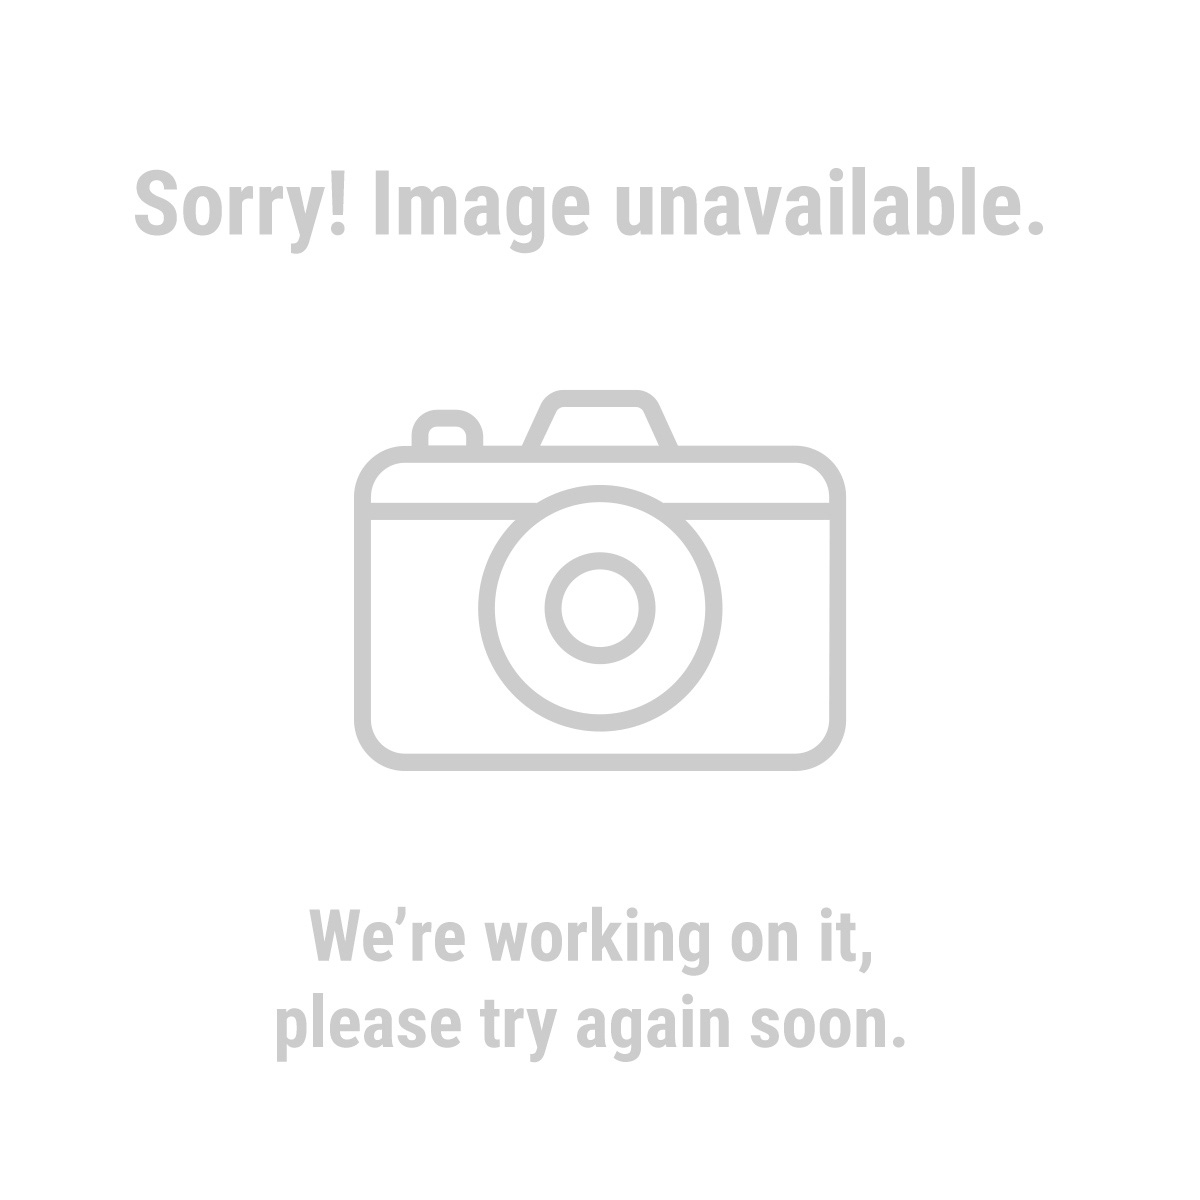 Predator Engines 69730 6.5 HP (212cc) OHV Horizontal Shaft Gas Engine EPA